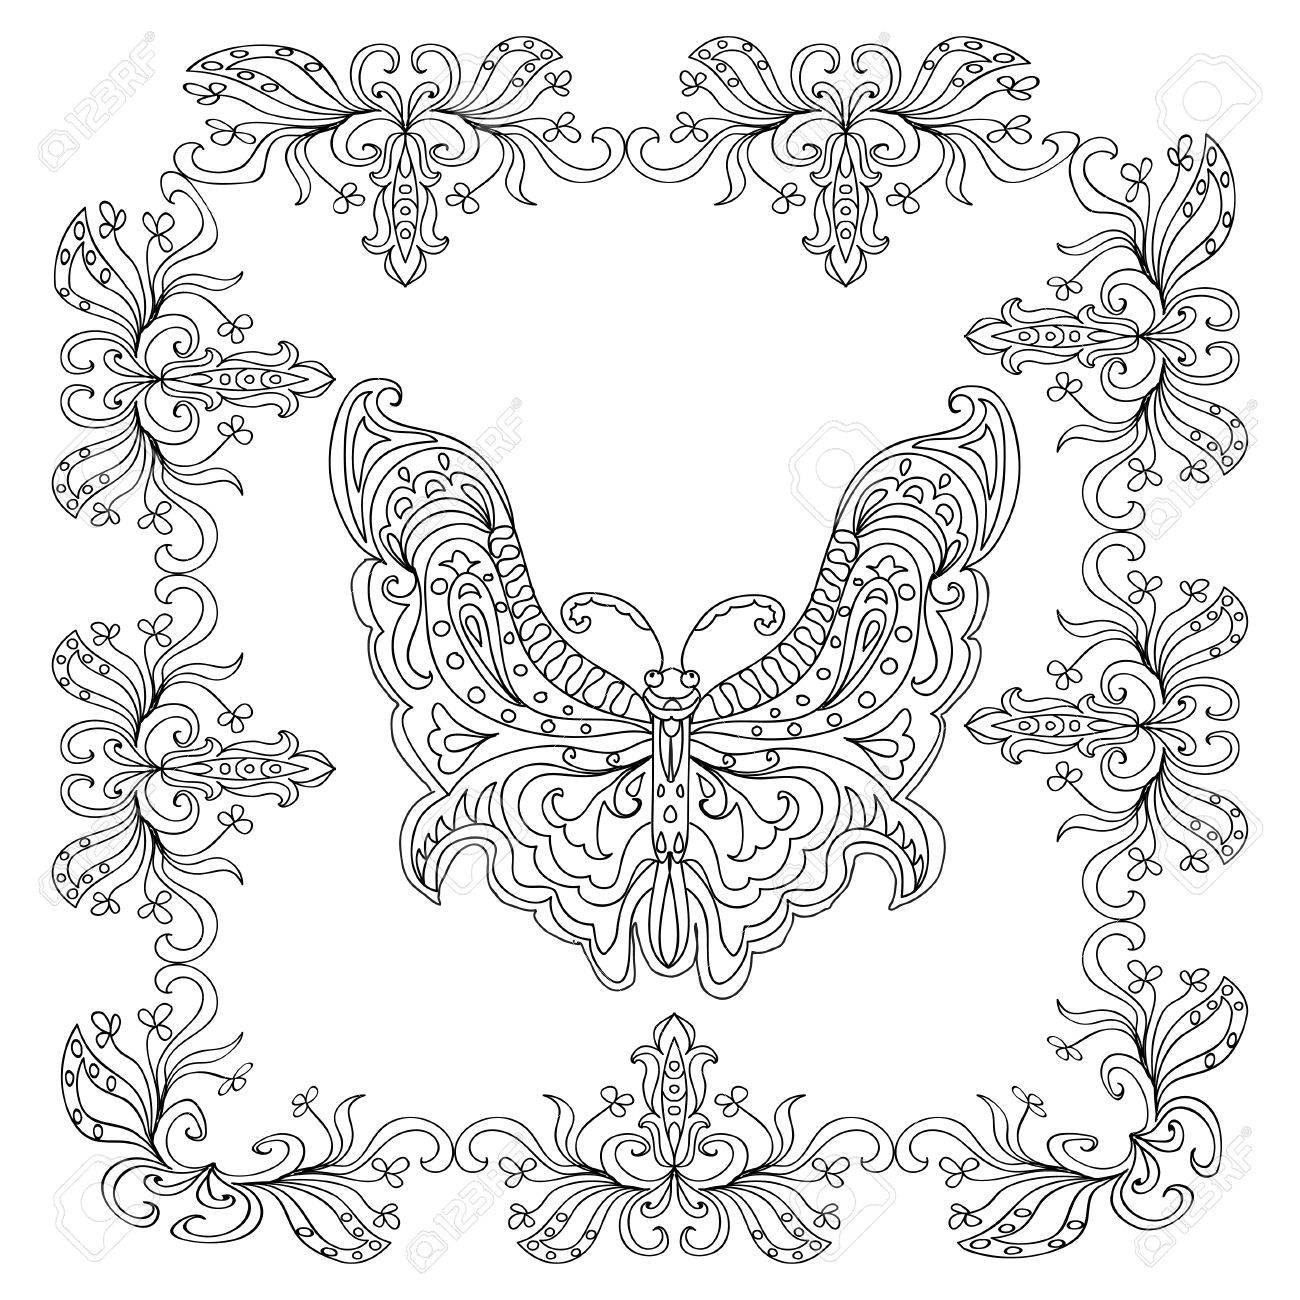 Butterfly Abstract Mandala Coloring Page Royalty Free Cliparts ...